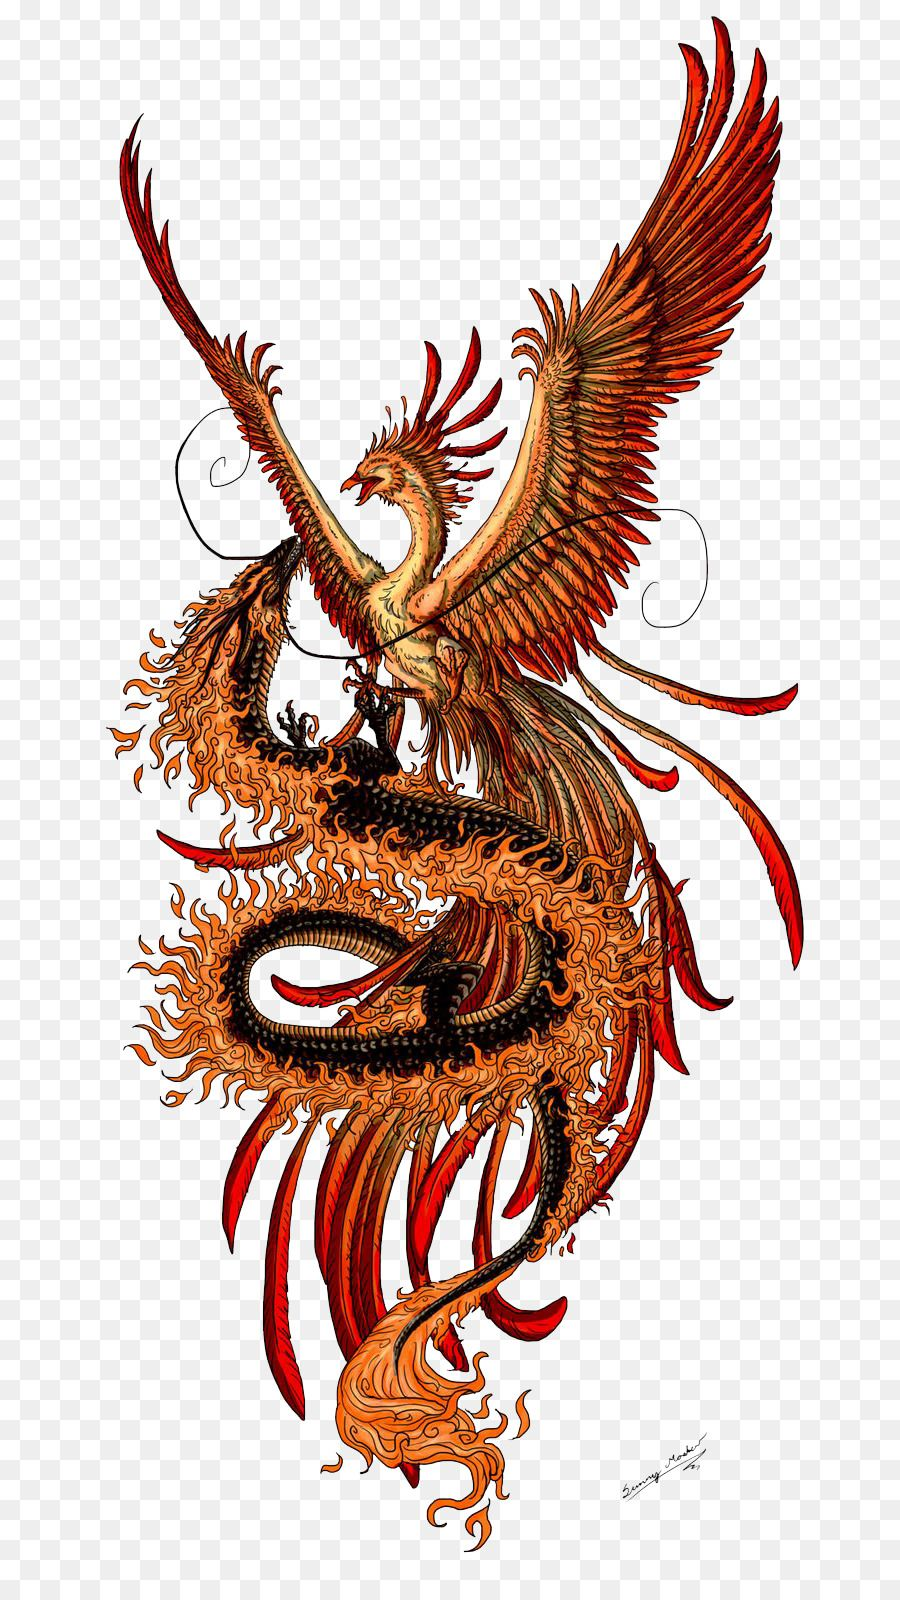 Phoenix Chinese Dragon Fenghuang Tattoo Phoenix Tattoos Png Transparent Images Png Is About I Phoenix Tattoo Tattoo Dragon And Phoenix Chinese Dragon Tattoos